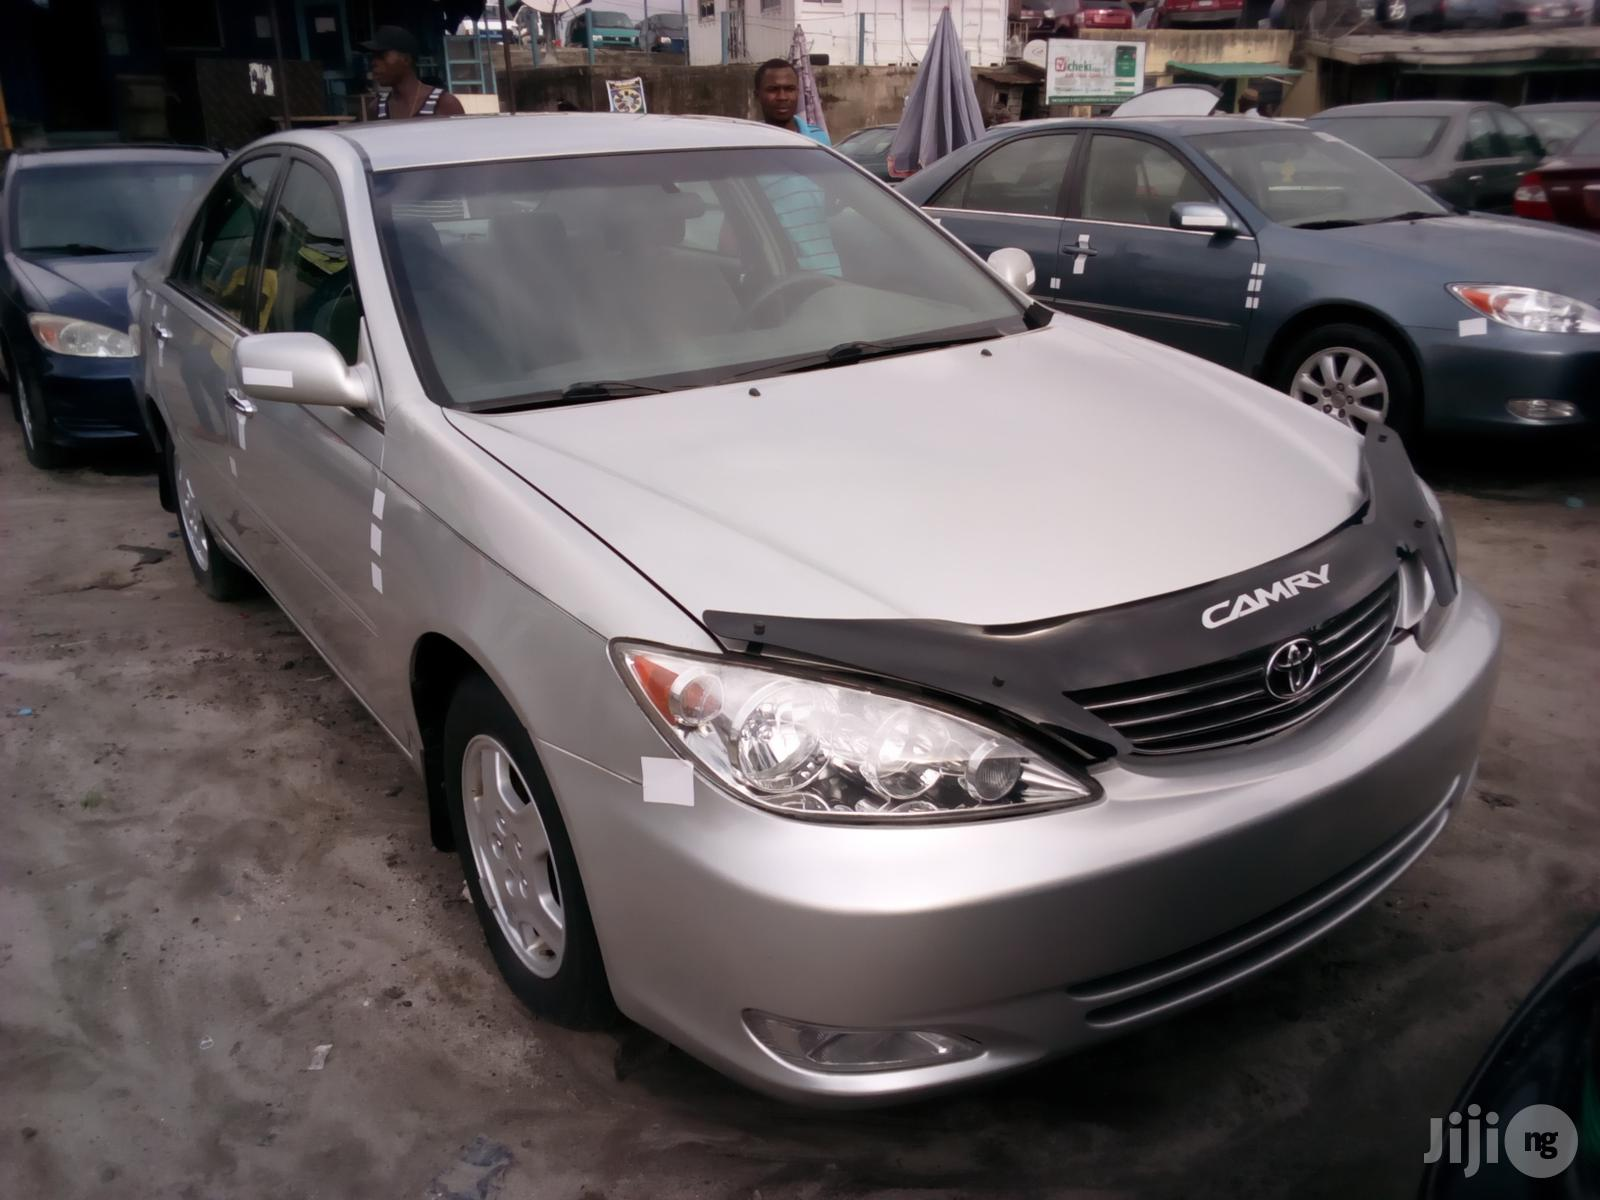 Toyota Camry 2004 Silver   Cars for sale in Apapa, Lagos State, Nigeria